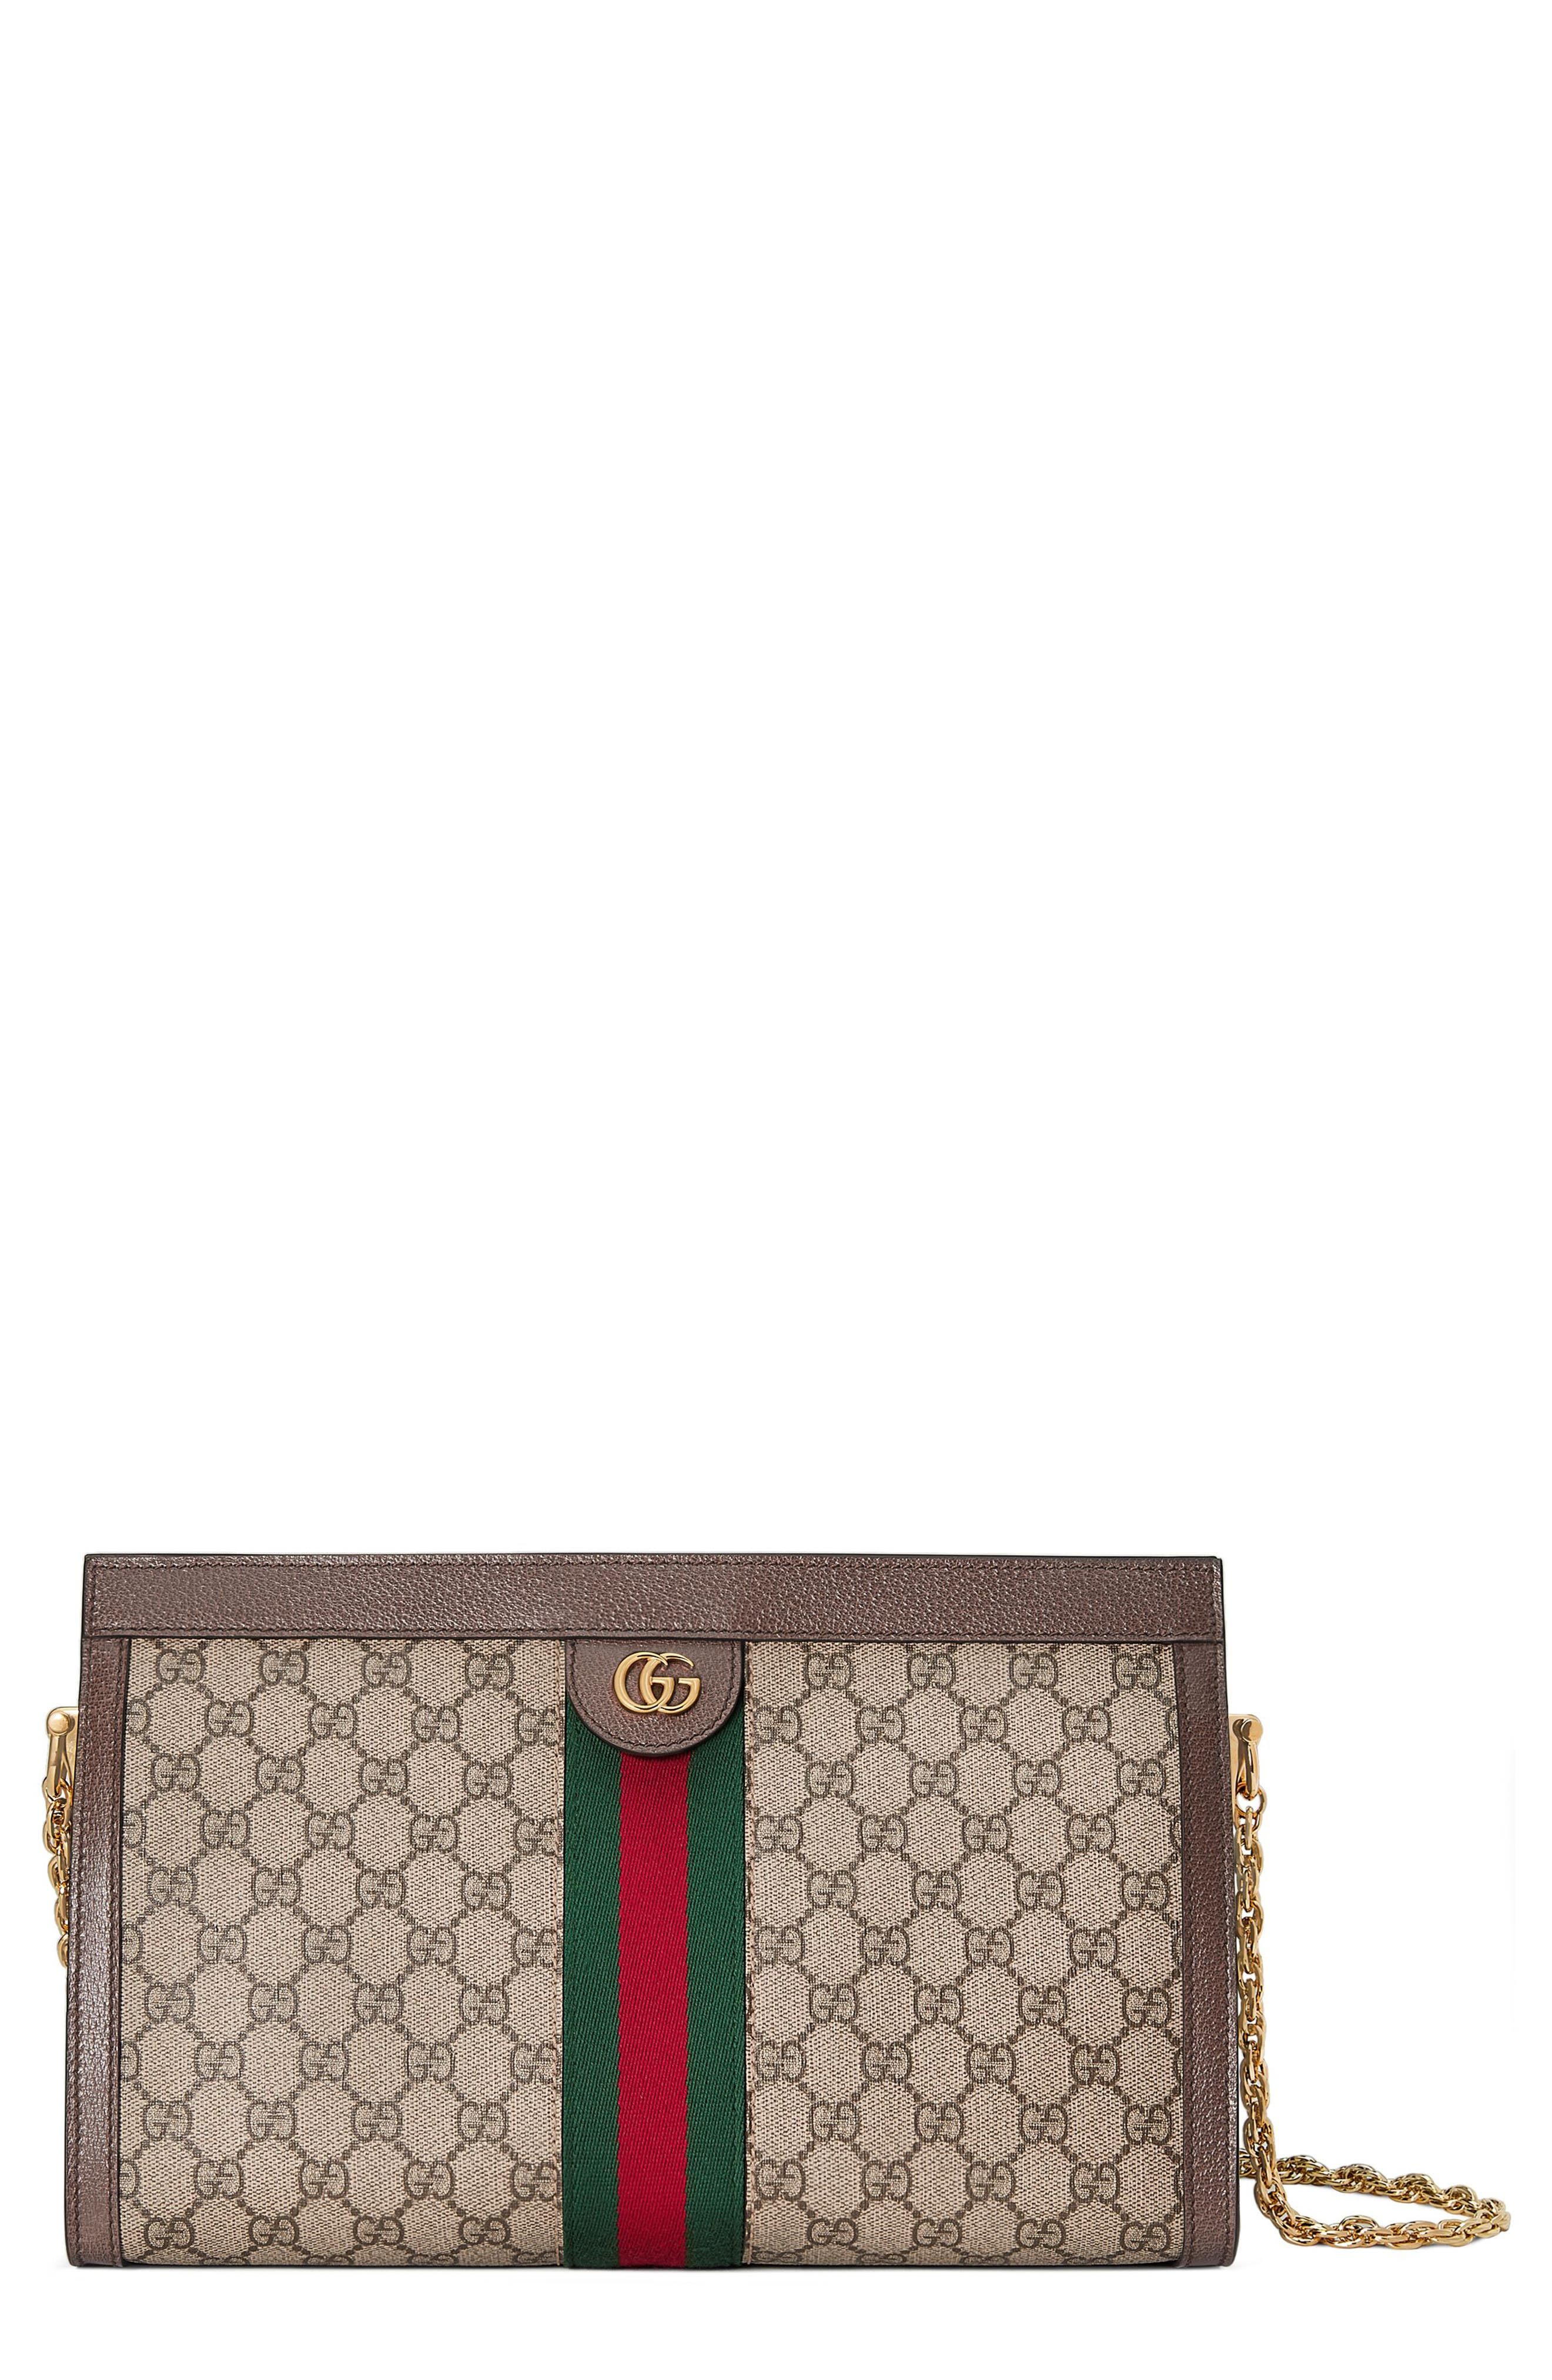 GUCCI, GG Supreme Canvas Shoulder Bag, Main thumbnail 1, color, BEIGE EBONY/ NERO/ VERT/ RED